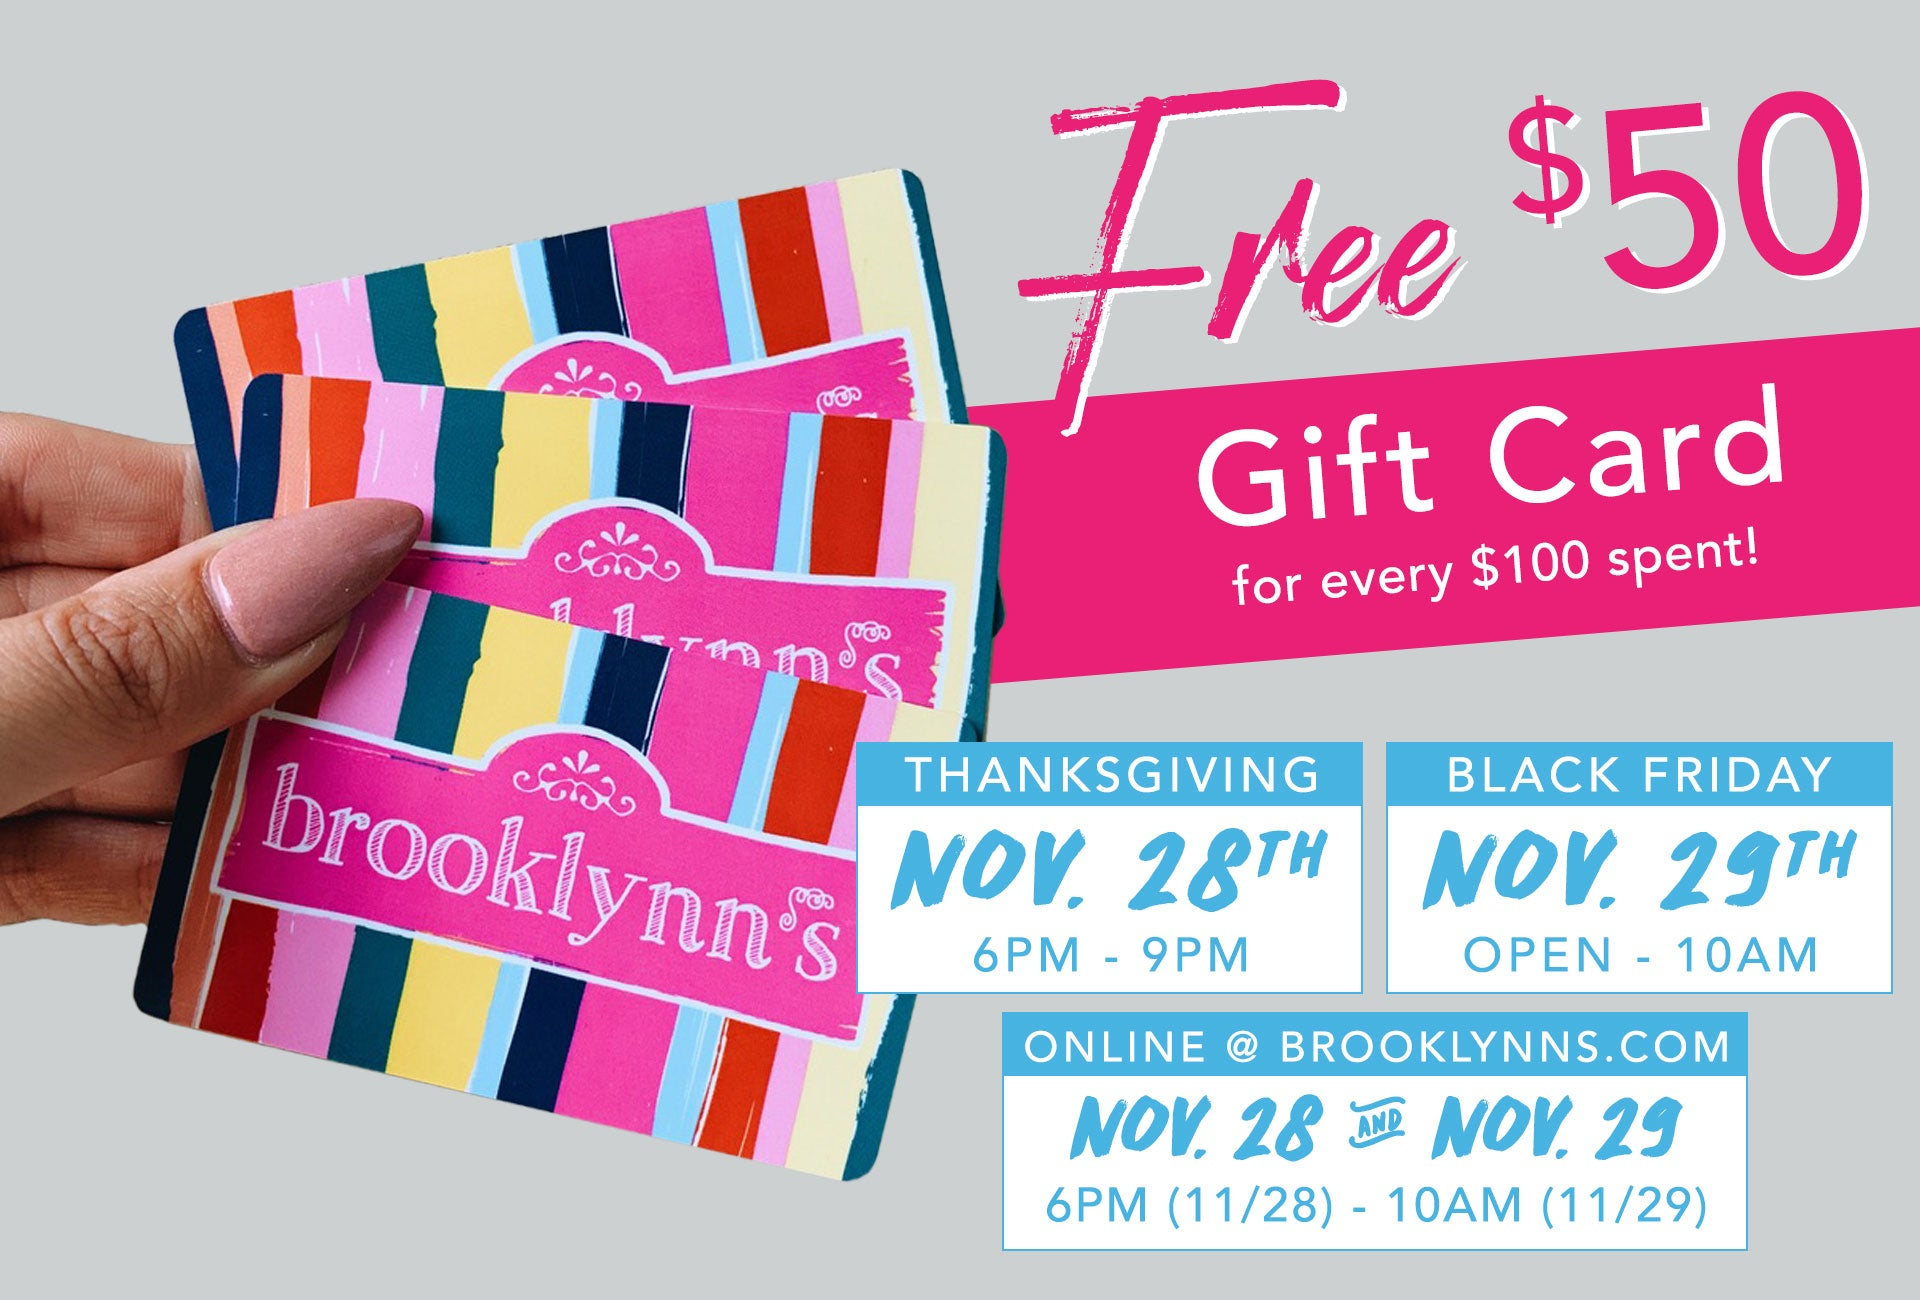 Get a FREE $50 Gift Card when you spend $100!